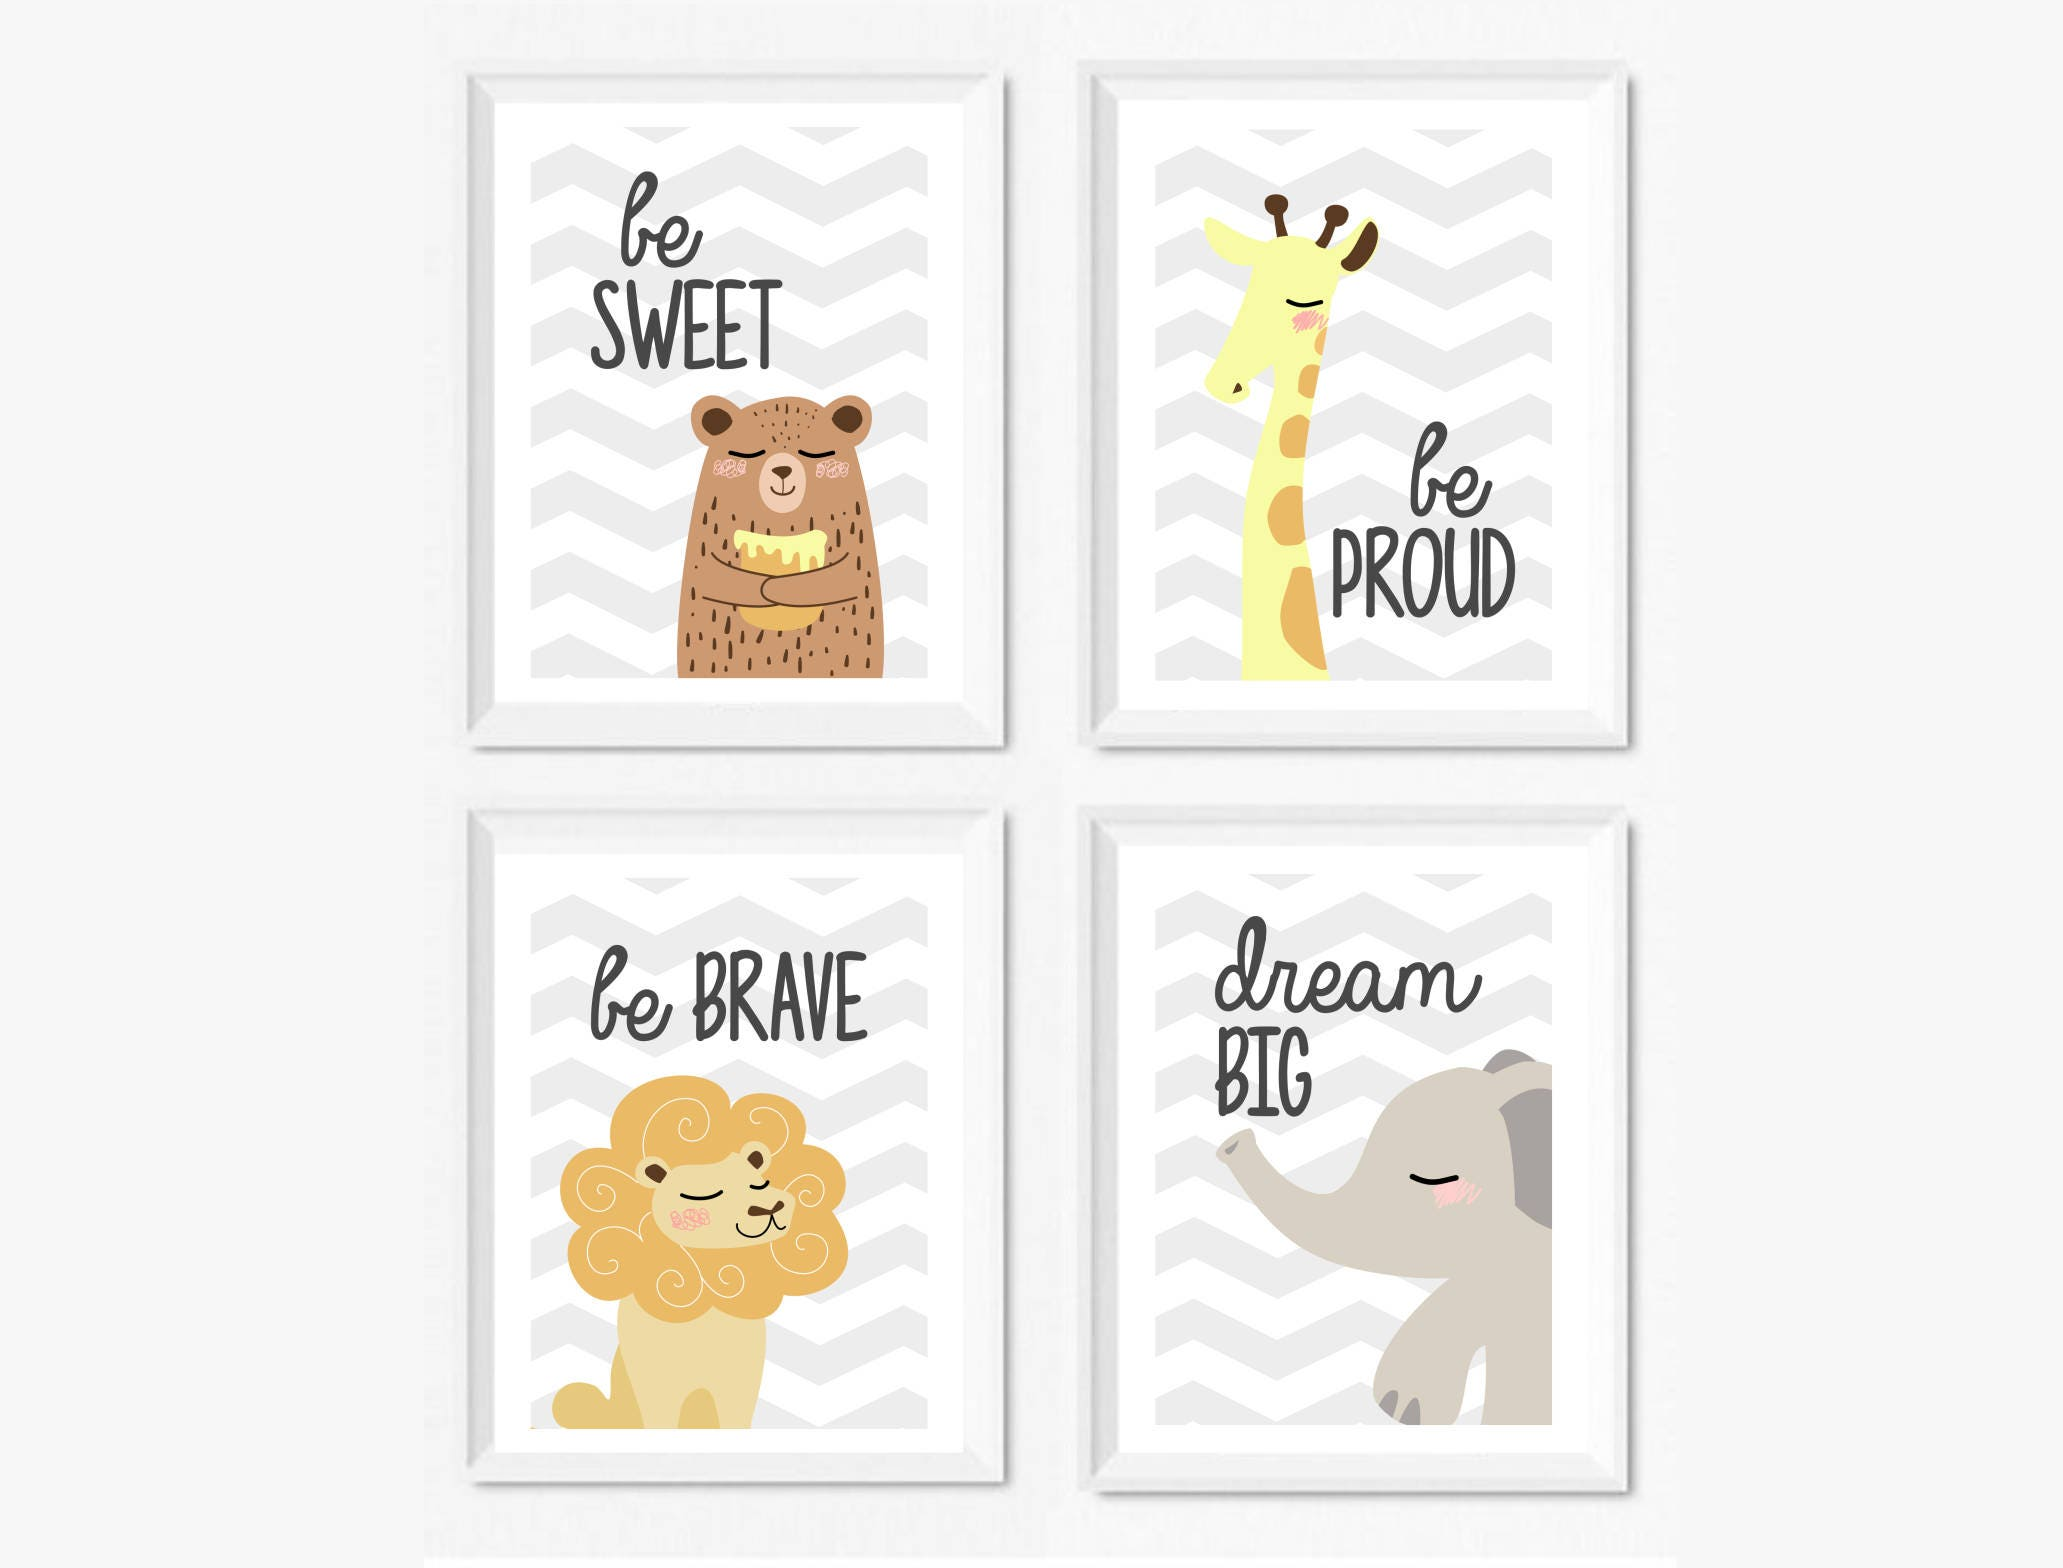 Poster camera bambini illustrazione be sweet orso be proud - Quadri per cameretta ...